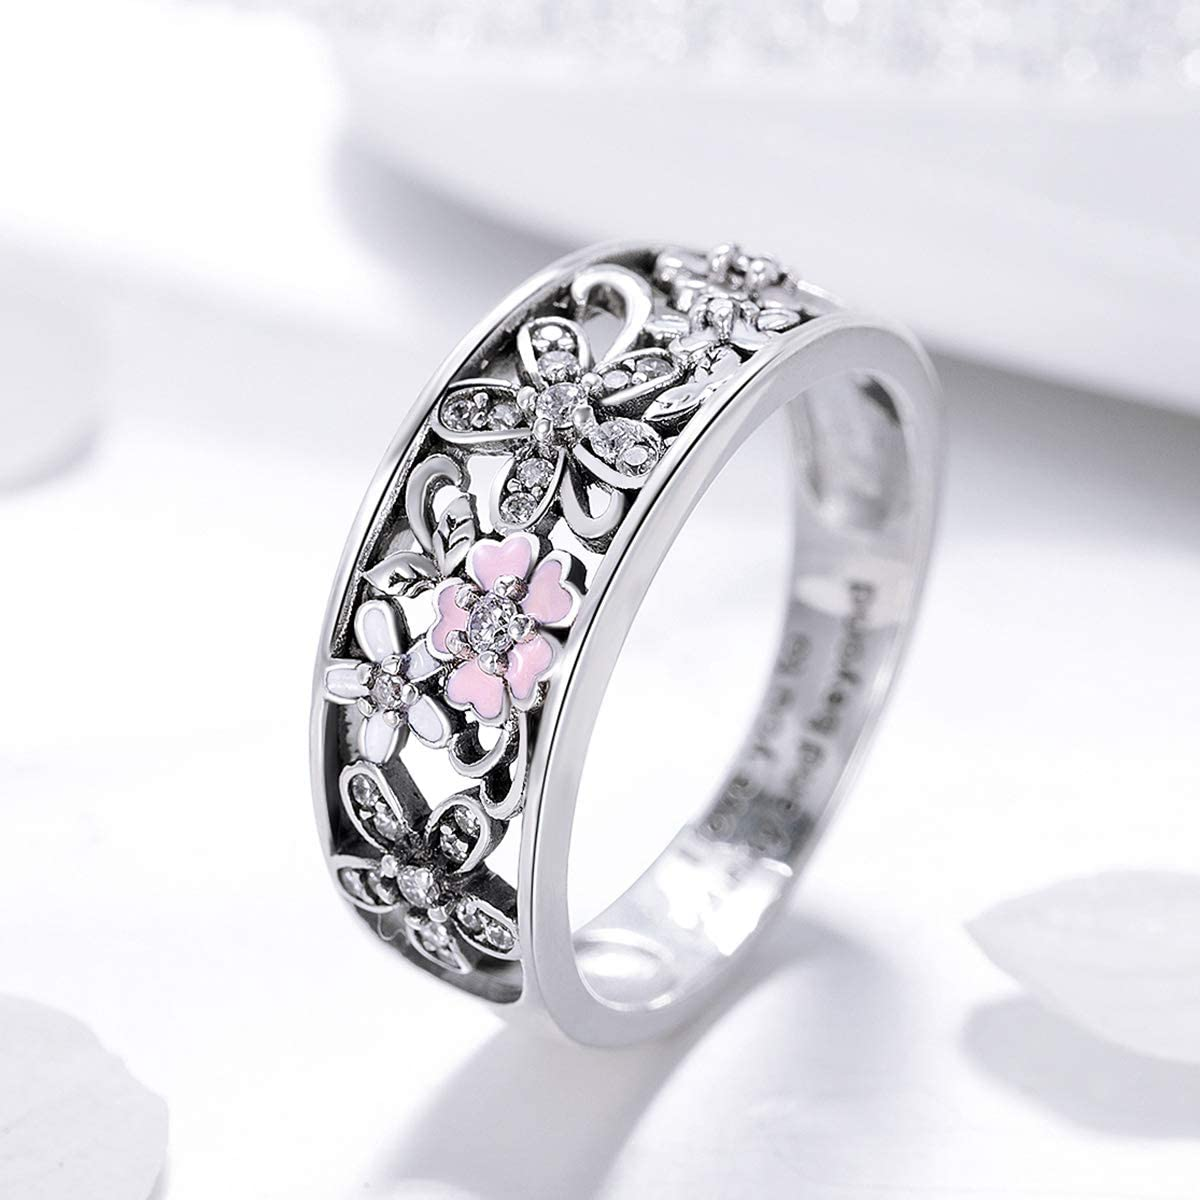 Clear CZ /& Pink Enamel The Kiss Daisy Flower /& Infinity Love Pave 925 Sterling Silver Ring